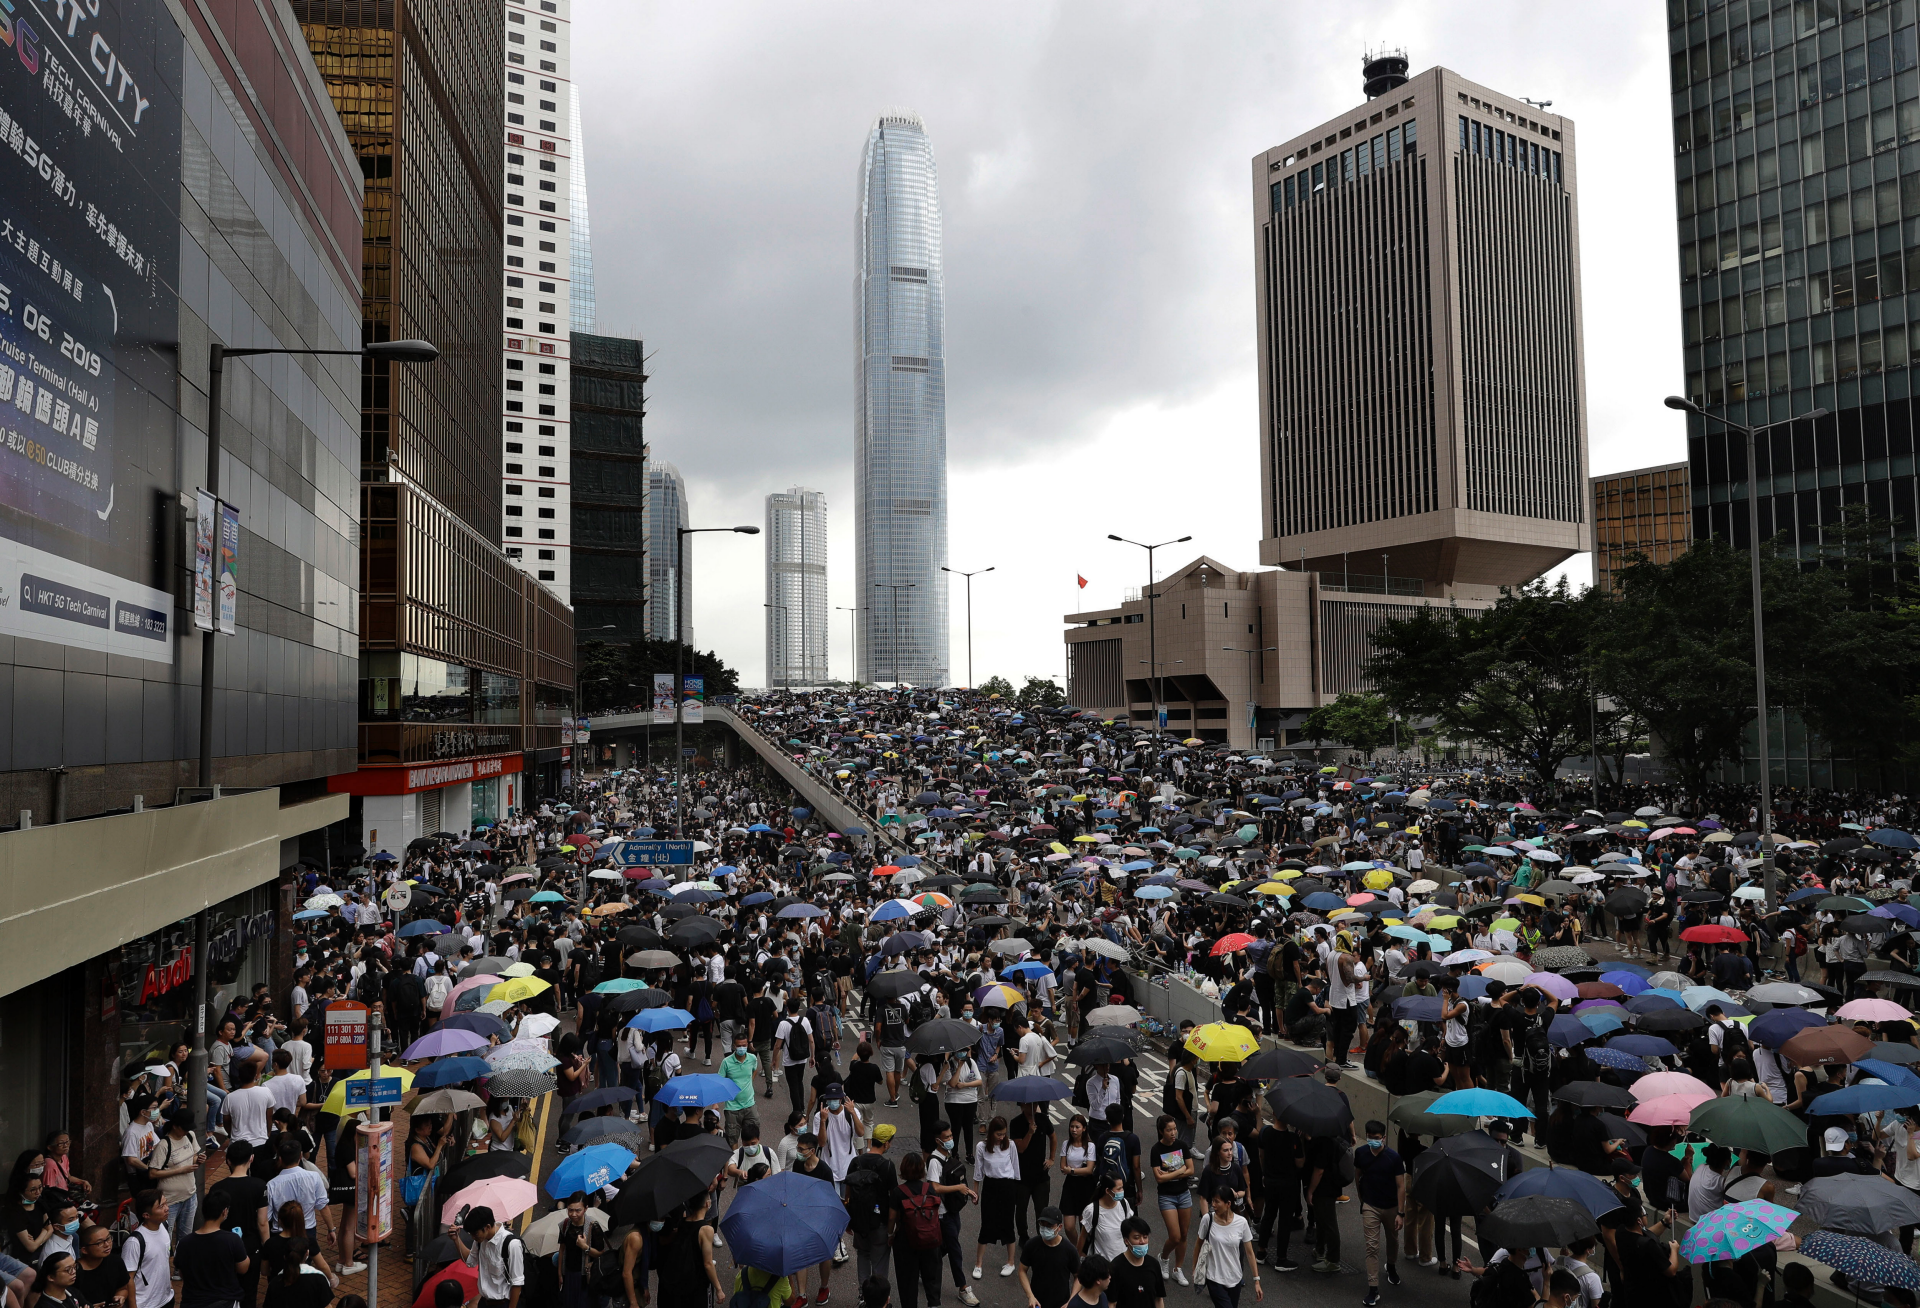 Westlake Legal Group ContentBroker_contentid-f9cfc23d332c49ceafe116cde2e389a4 Q&A: Why bill proposed in Hong Kong set off huge protests YANAN WANG fox-news/world/world-regions/asia fox-news/world fnc/world fnc eea8f5bf-b639-5022-b843-355d5d18f6ff Associated Press article